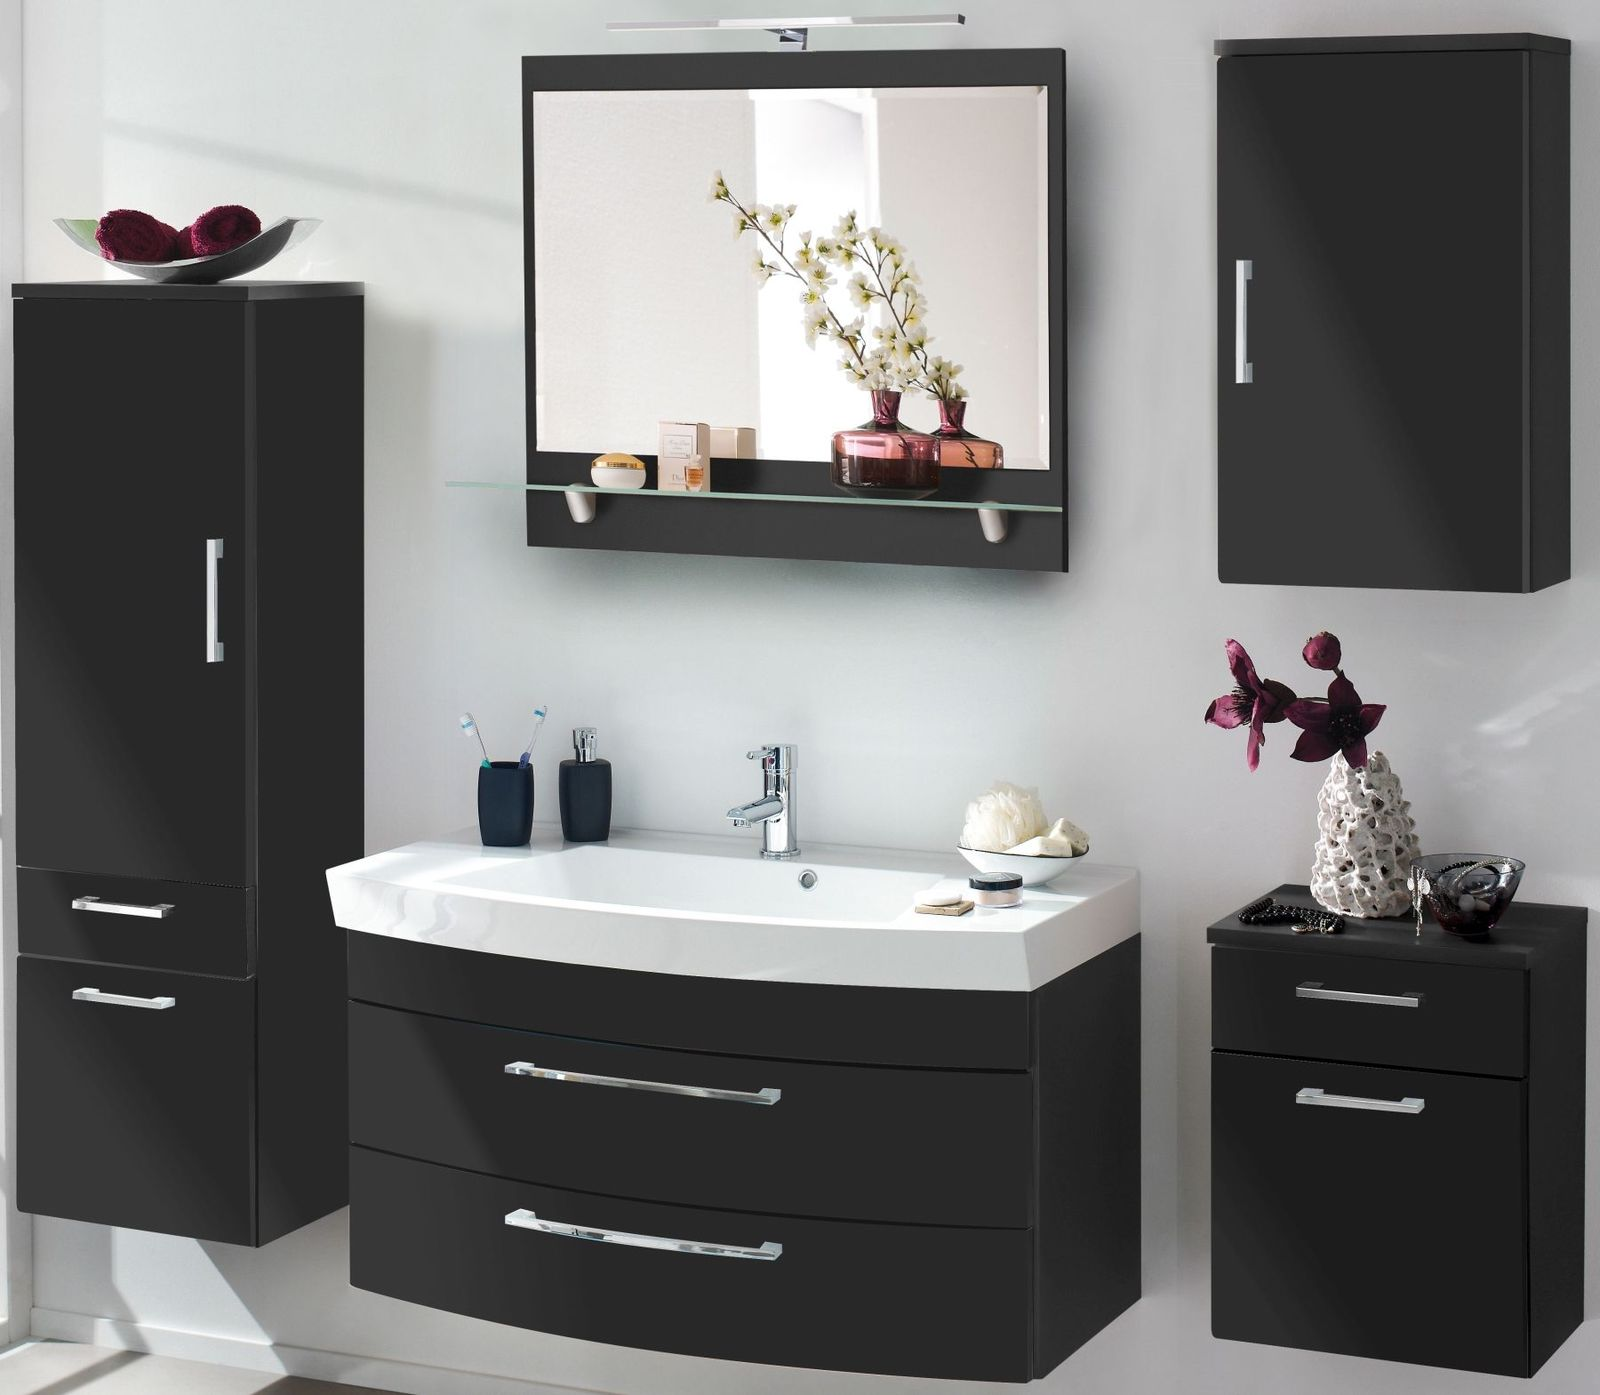 Bad Set Dusche Bad Komplett Great Komplett Badezimmer Teppich Design